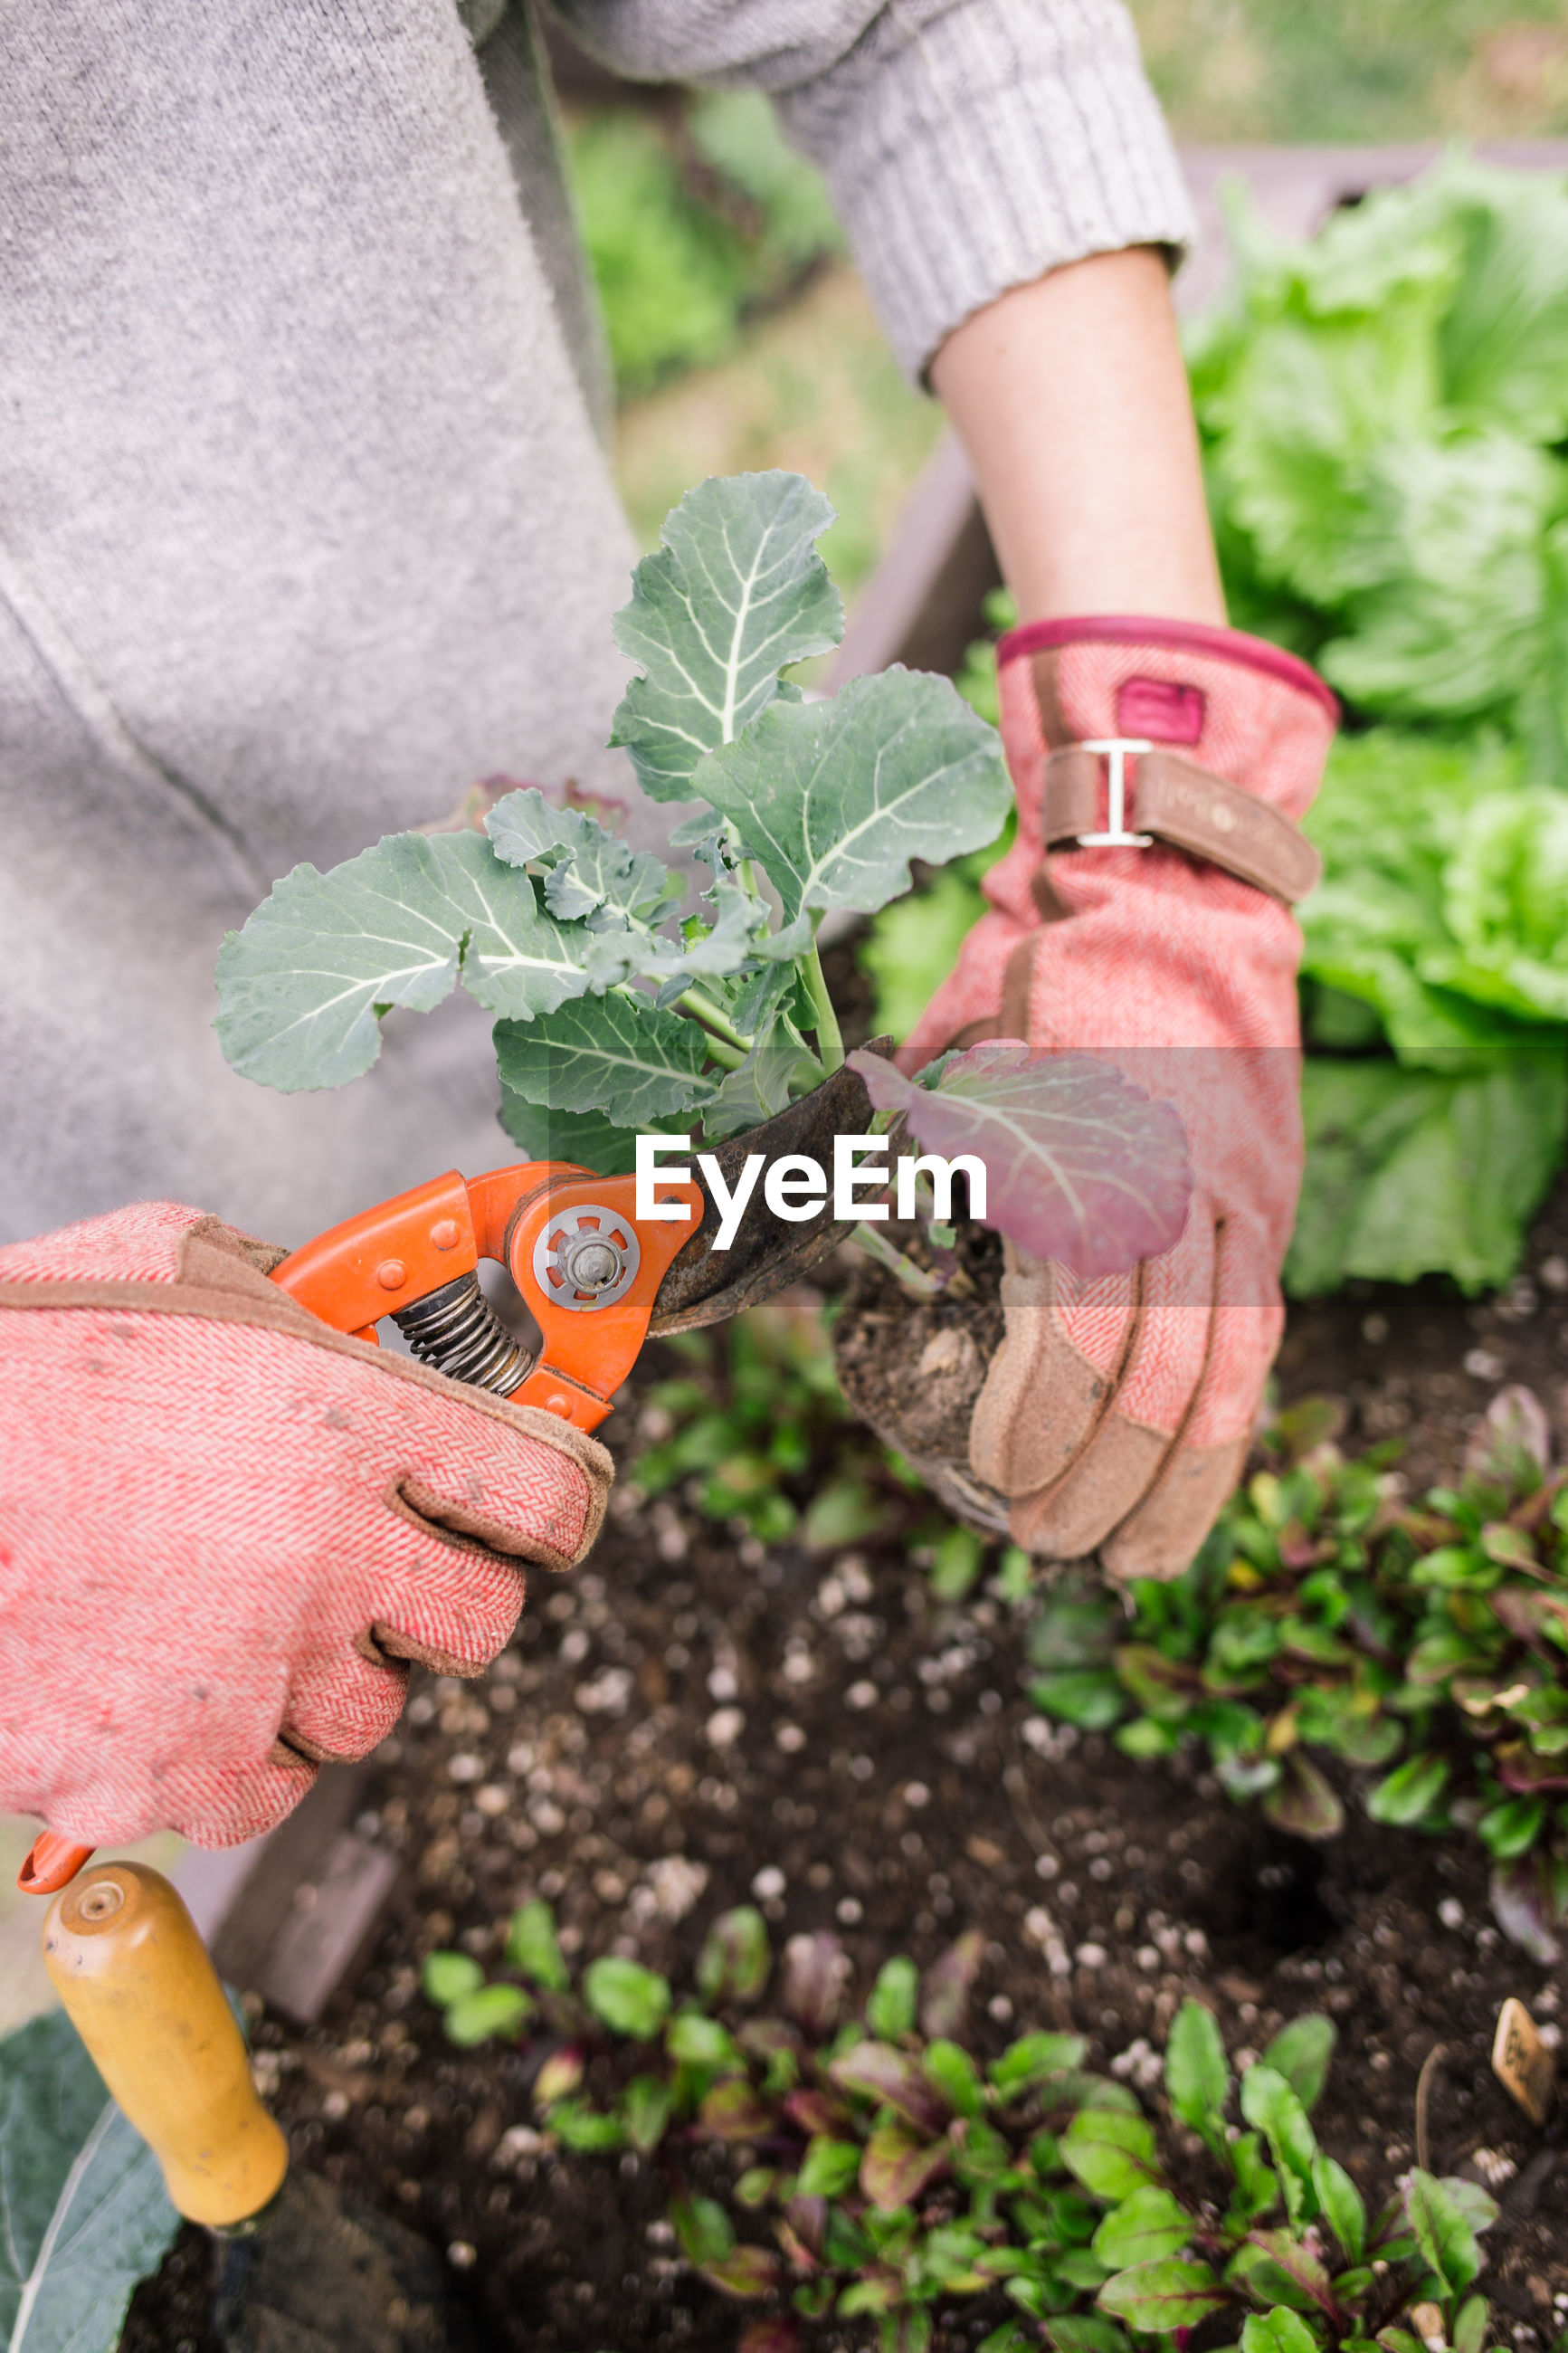 MIDSECTION OF PERSON HOLDING PLANTS IN GARDEN